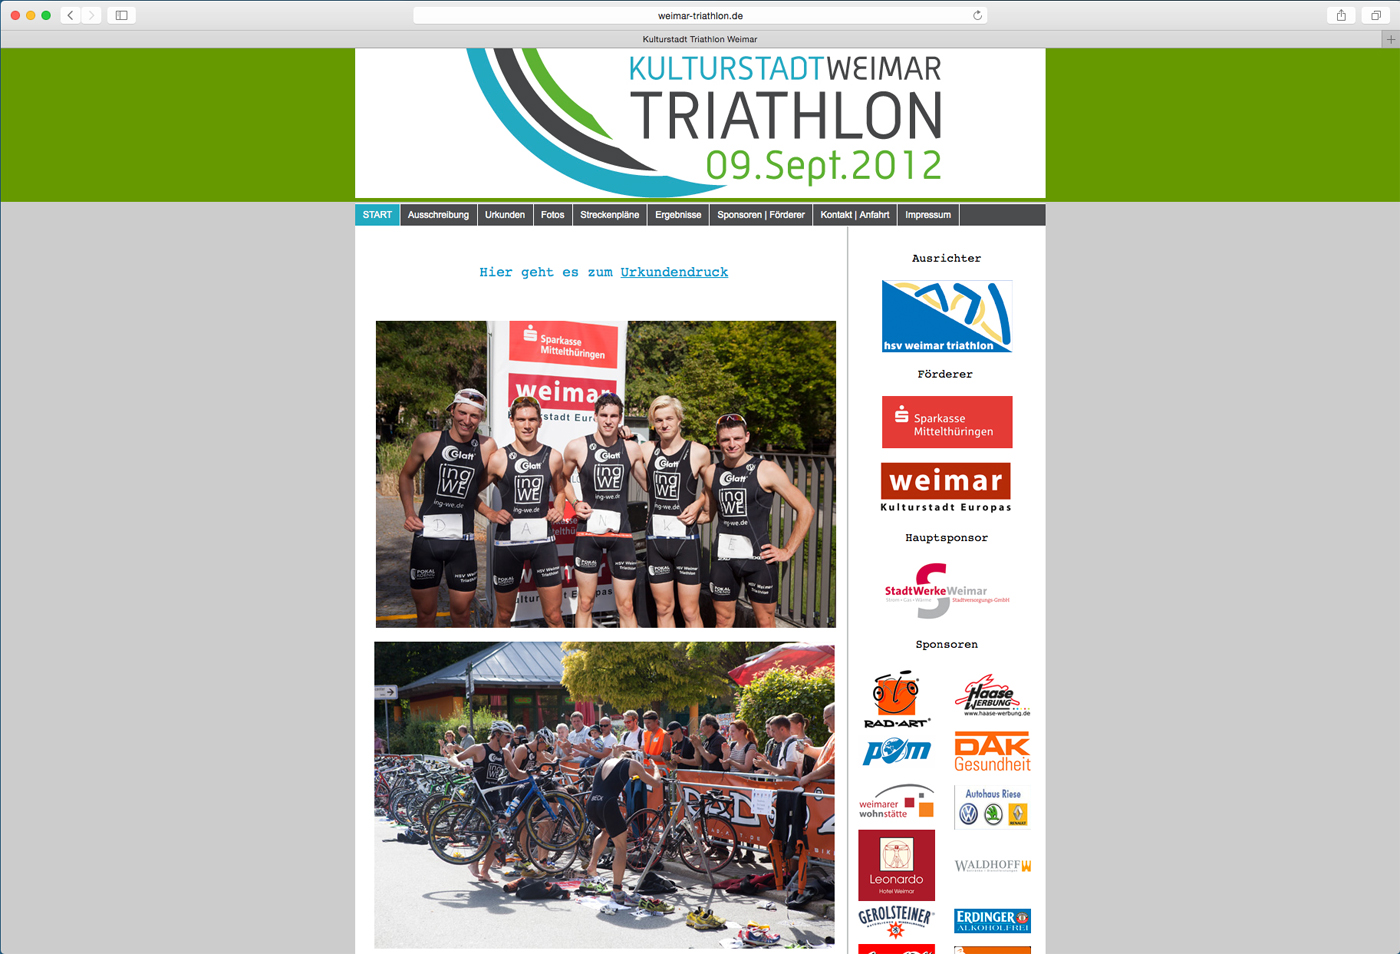 Weimar Triathlon Website